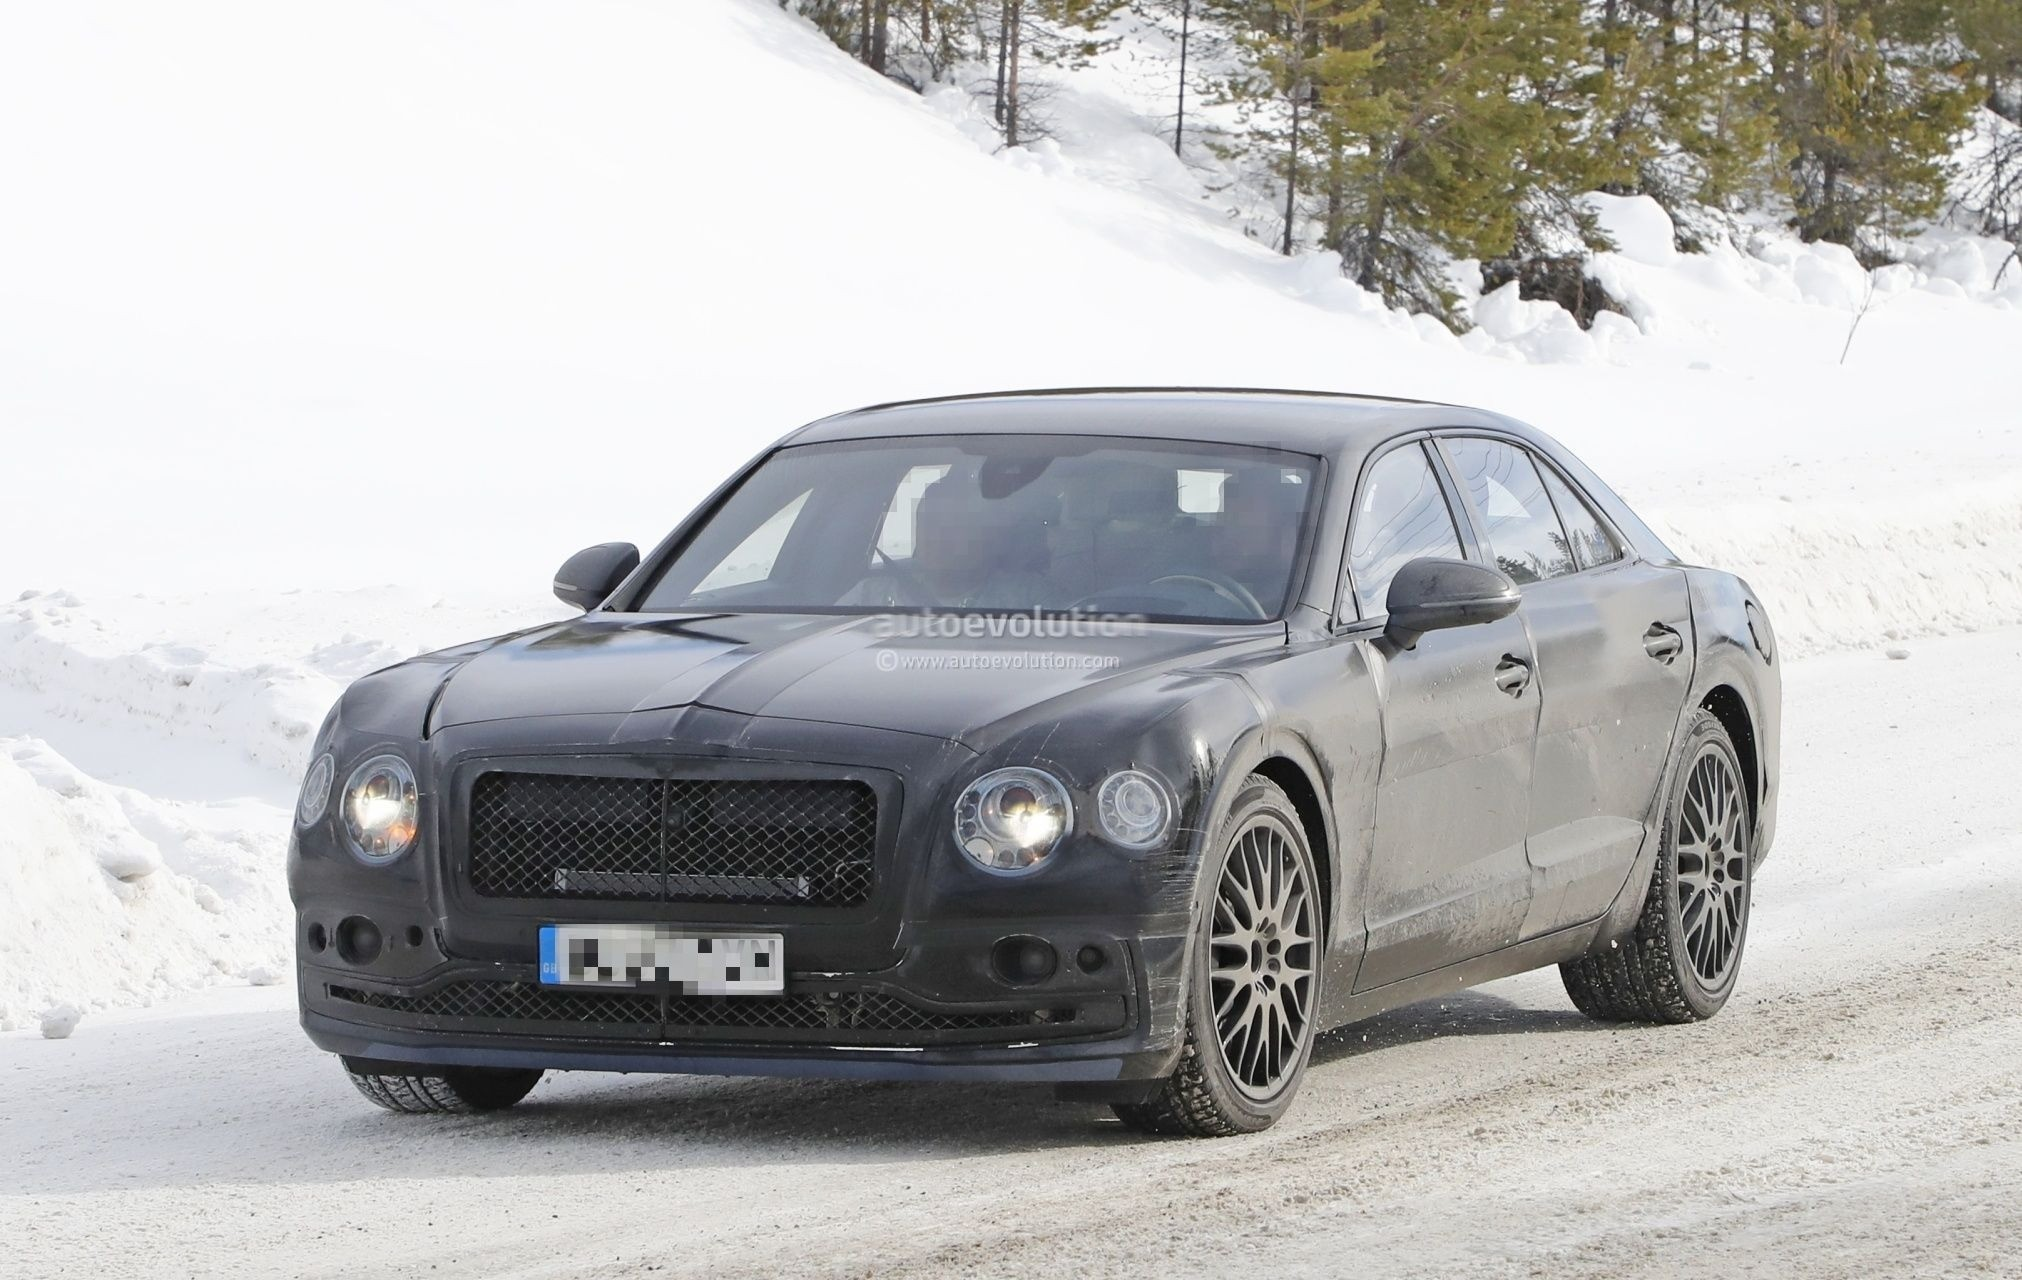 93 The Best 2020 Bentley Flying Spur Exterior